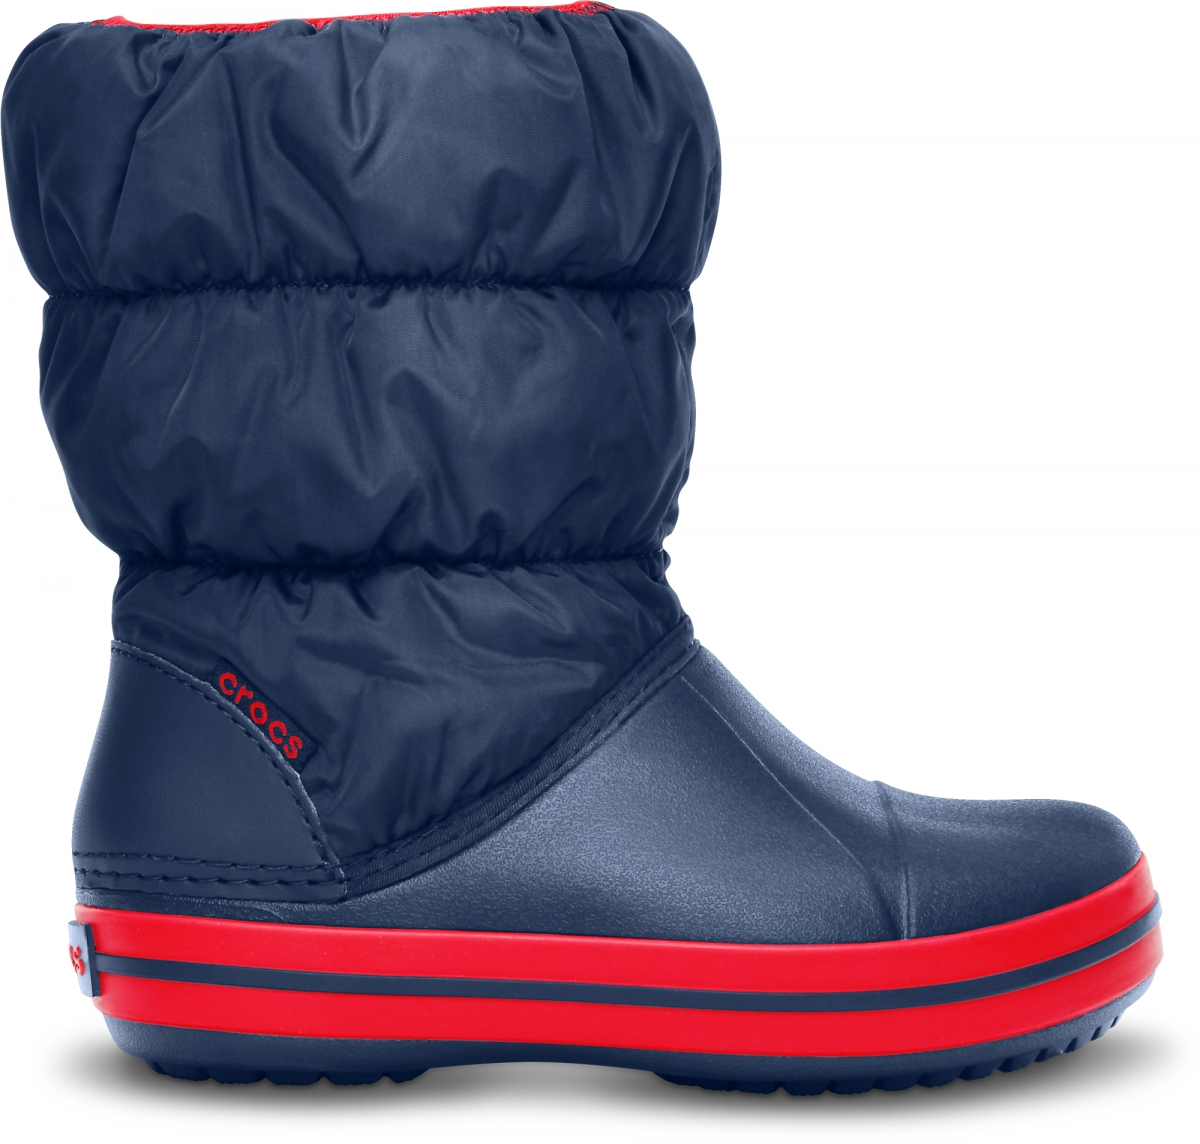 Crocs Winter Puff Boot Kids - Navy/Red, J3 (34-35)